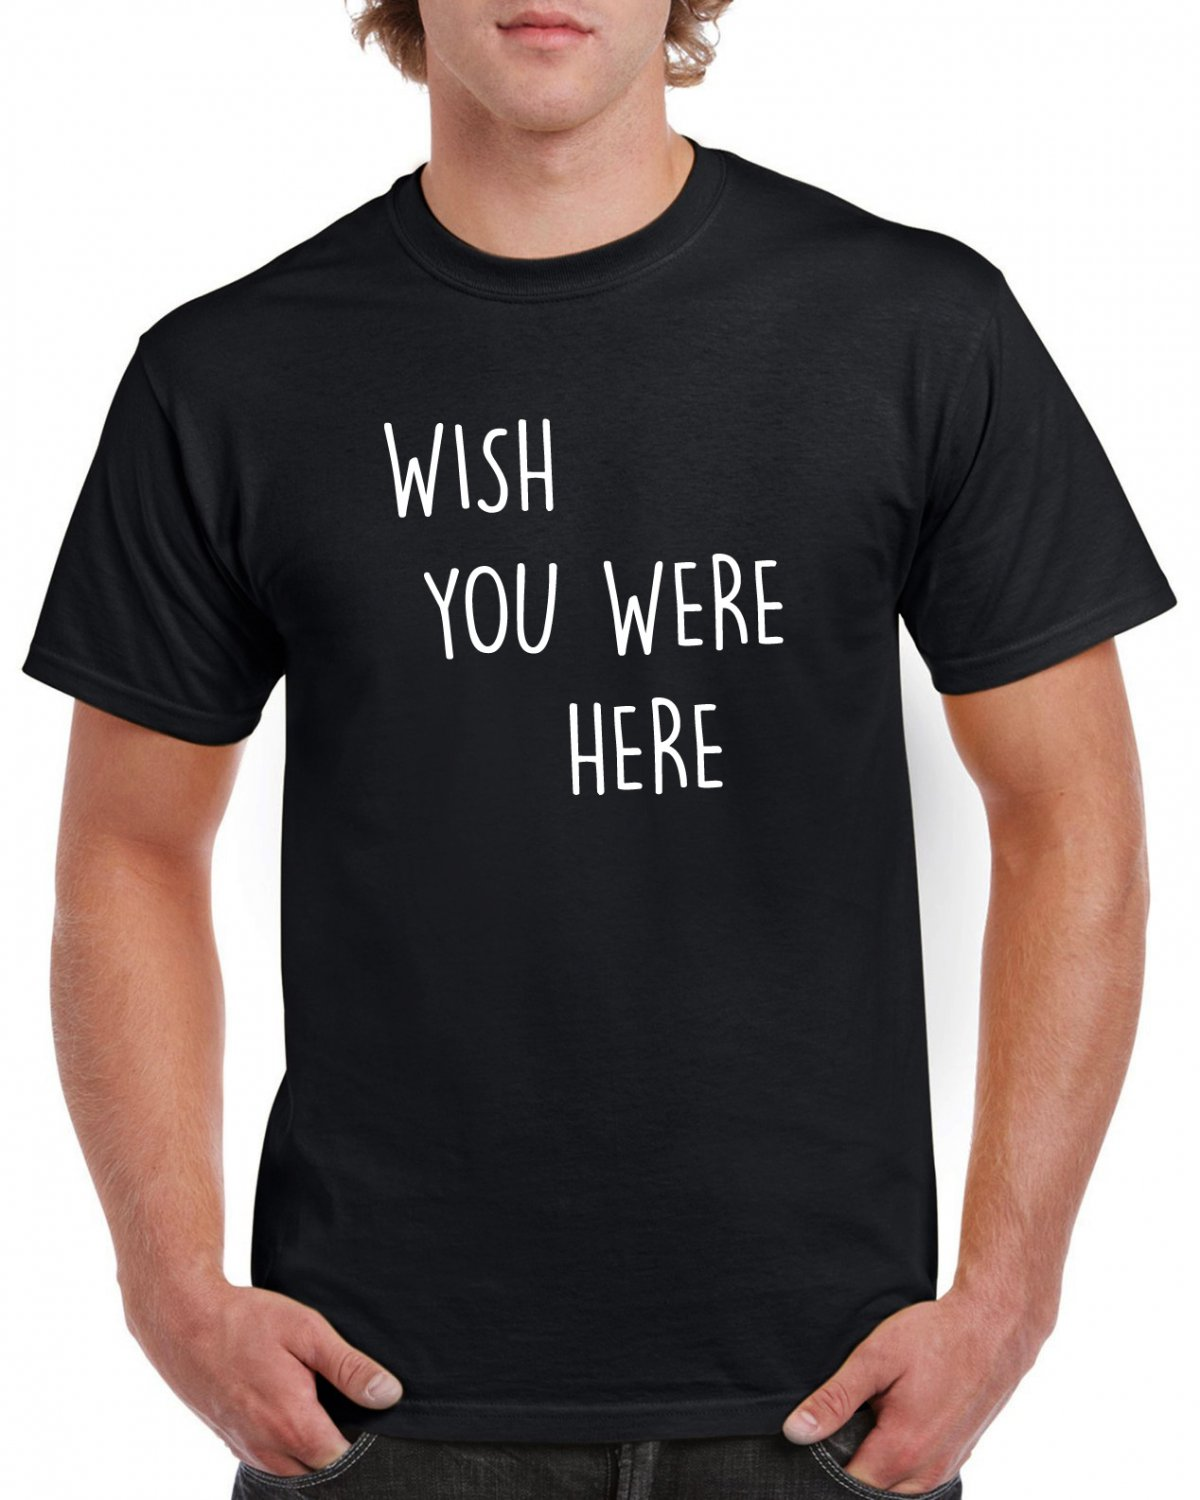 Wish You Were Here Tshirt Rock T-shirt Pink Floyd Lyrics Quote Top Tee